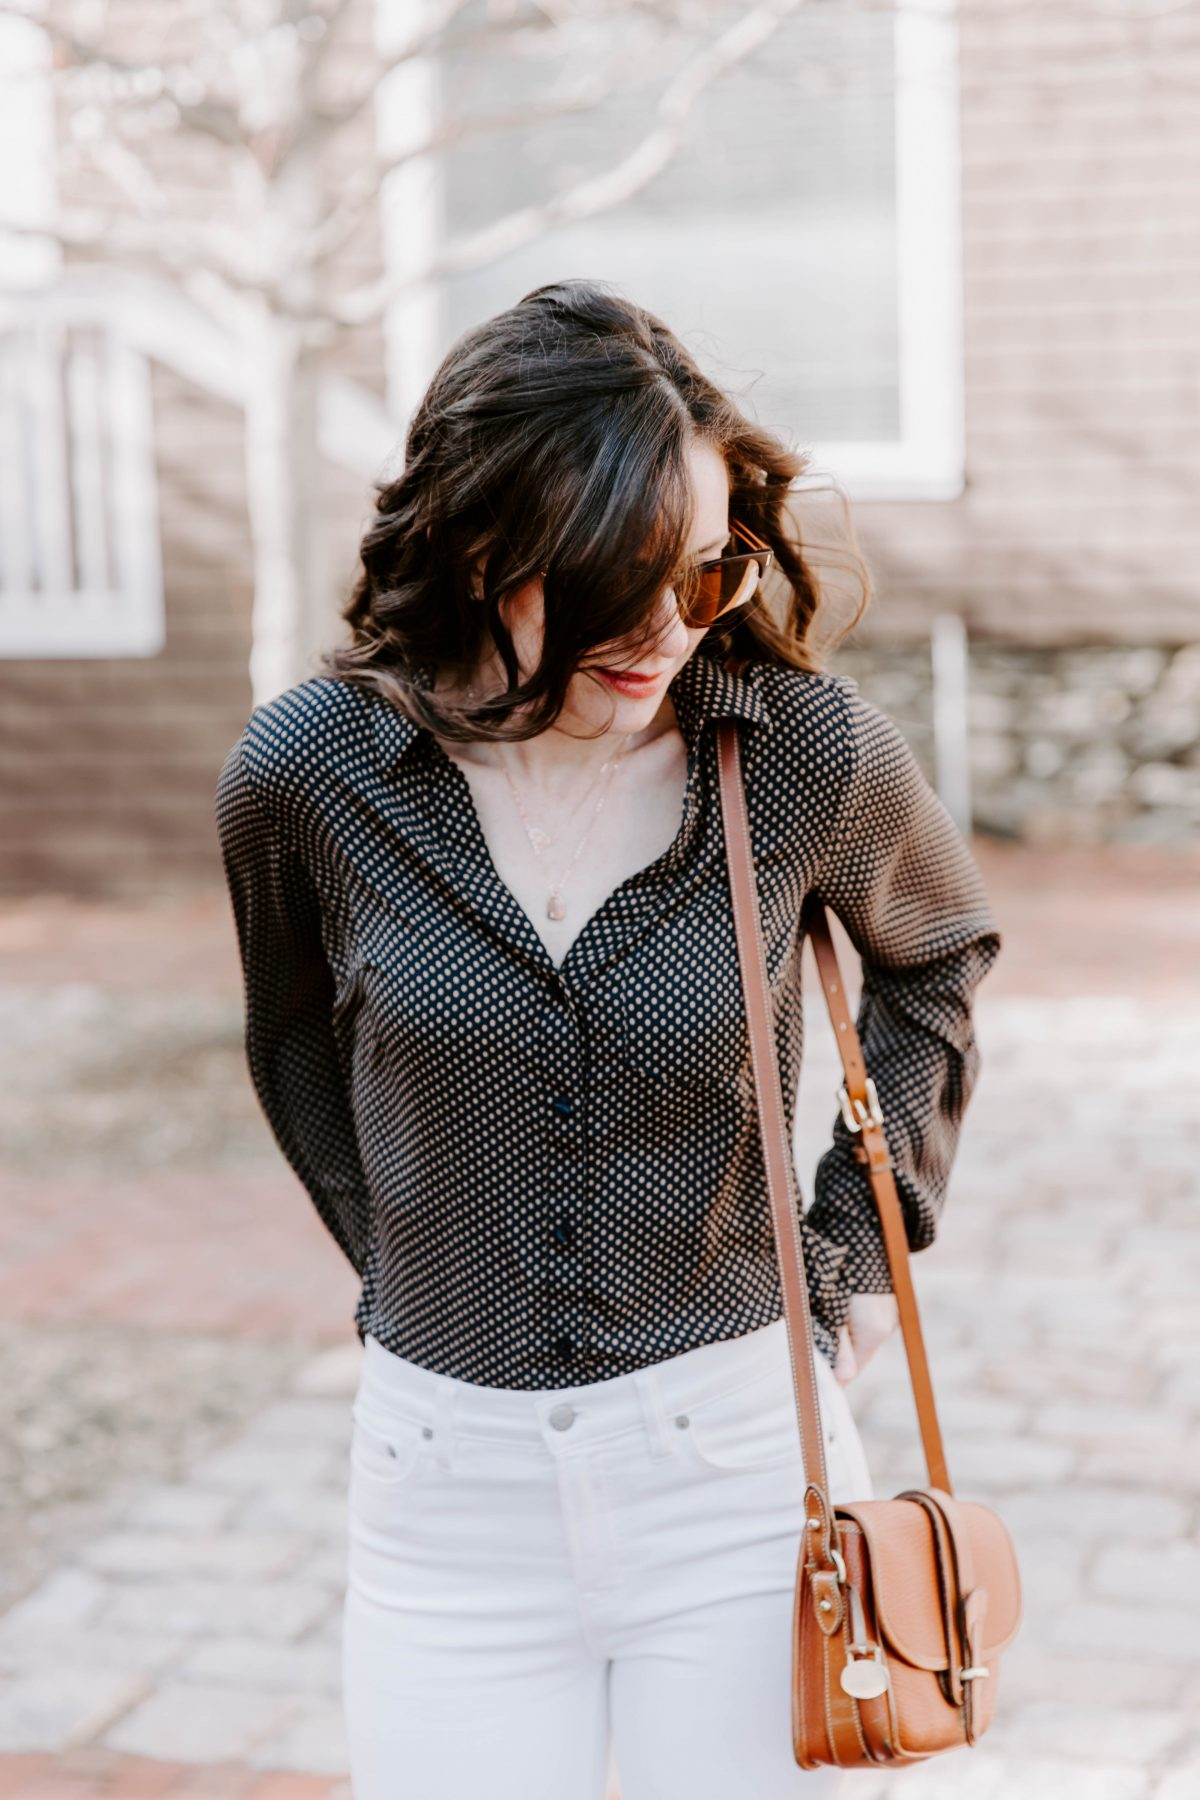 Woman wearing sunglasses, polka dot shirt, gold necklace, white pants with hands in back pockets looking to the side